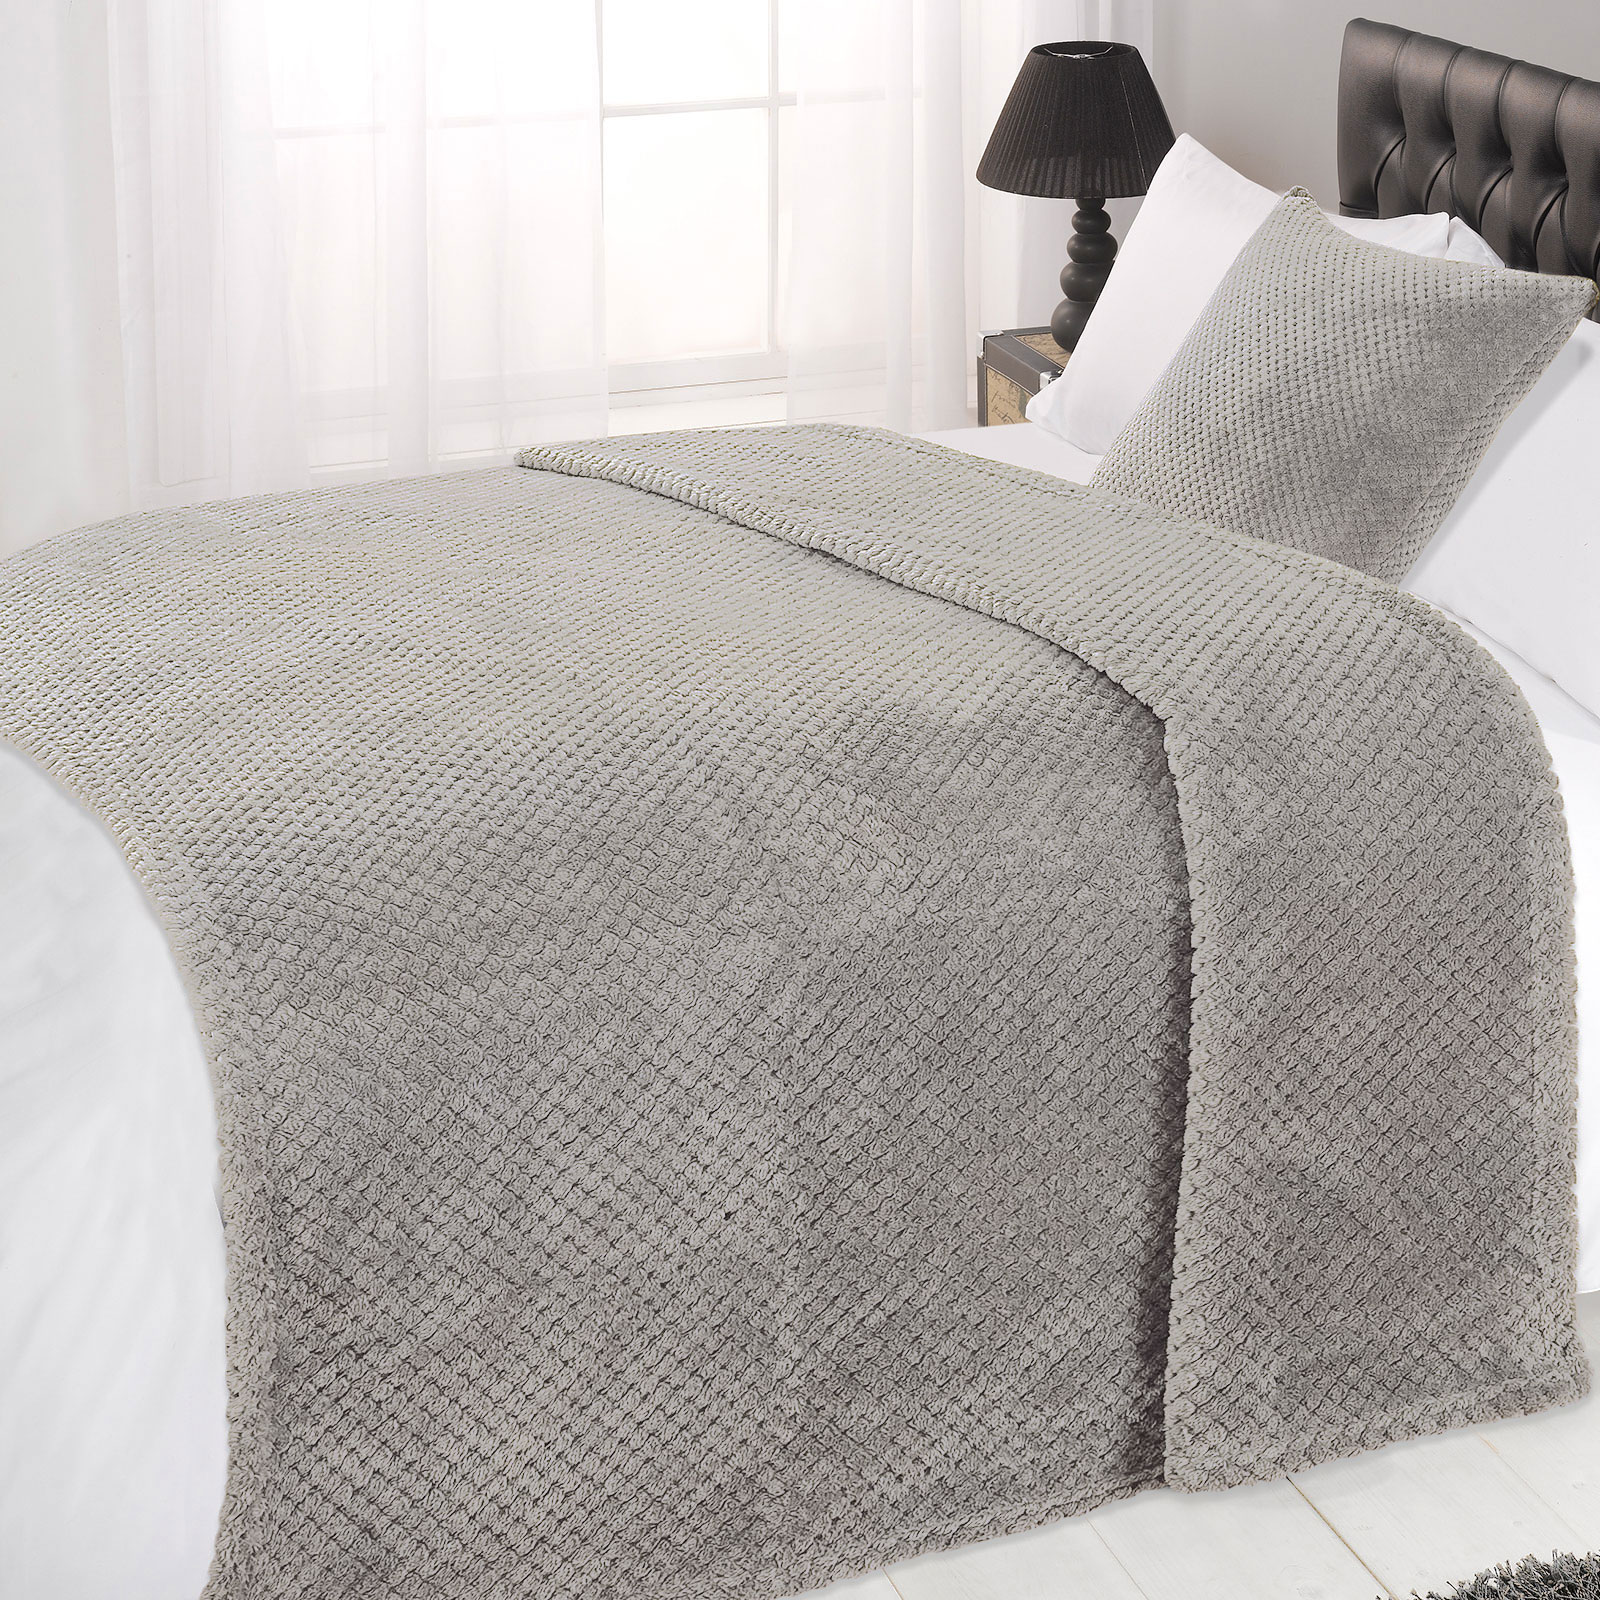 Dreamscene Luxury Waffle Honey b Mink Warm Throw Over Bed